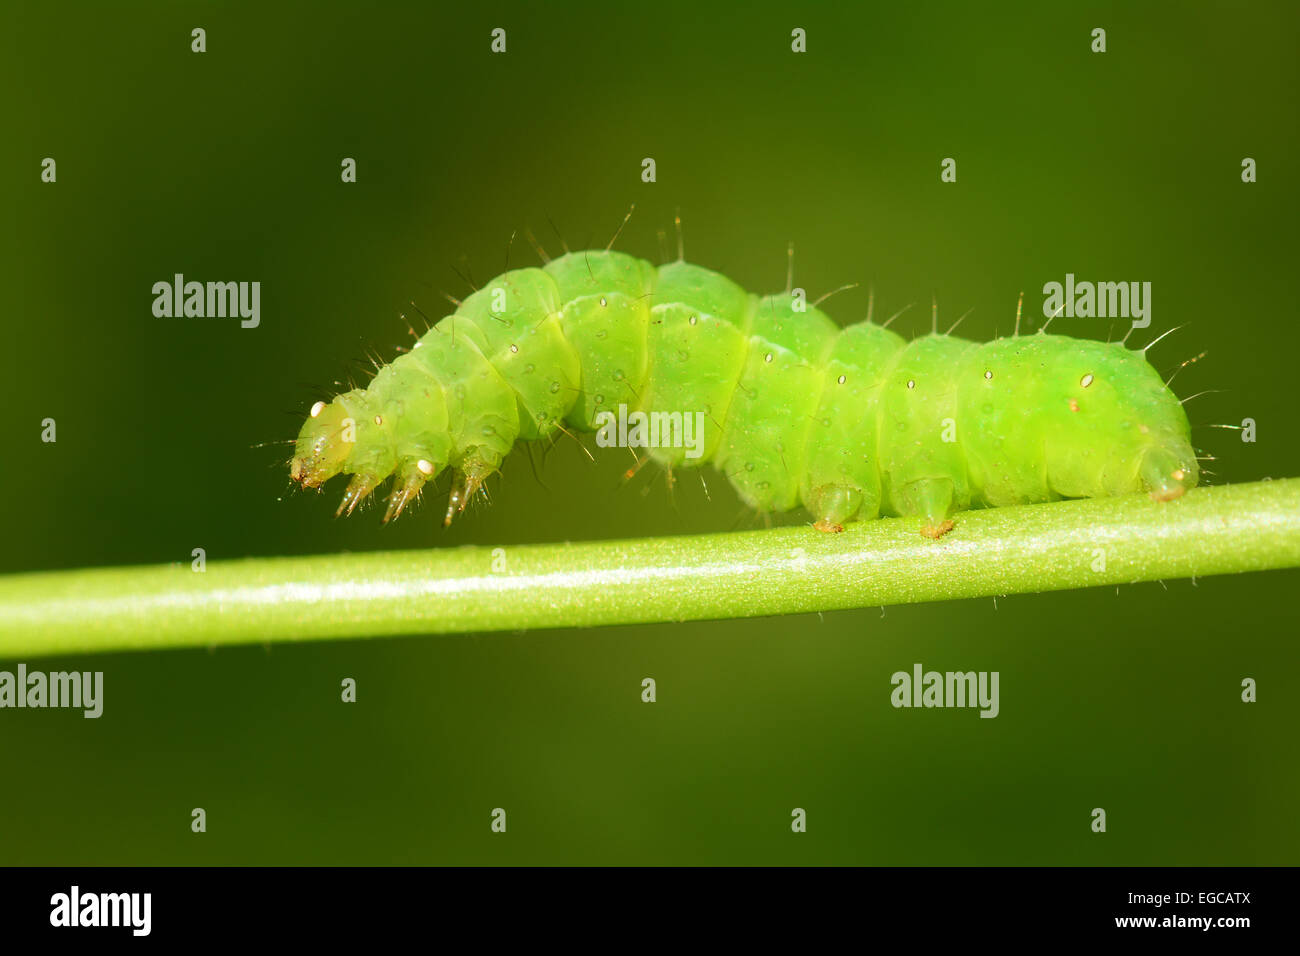 Green Caterpillar  on green stem - Stock Image